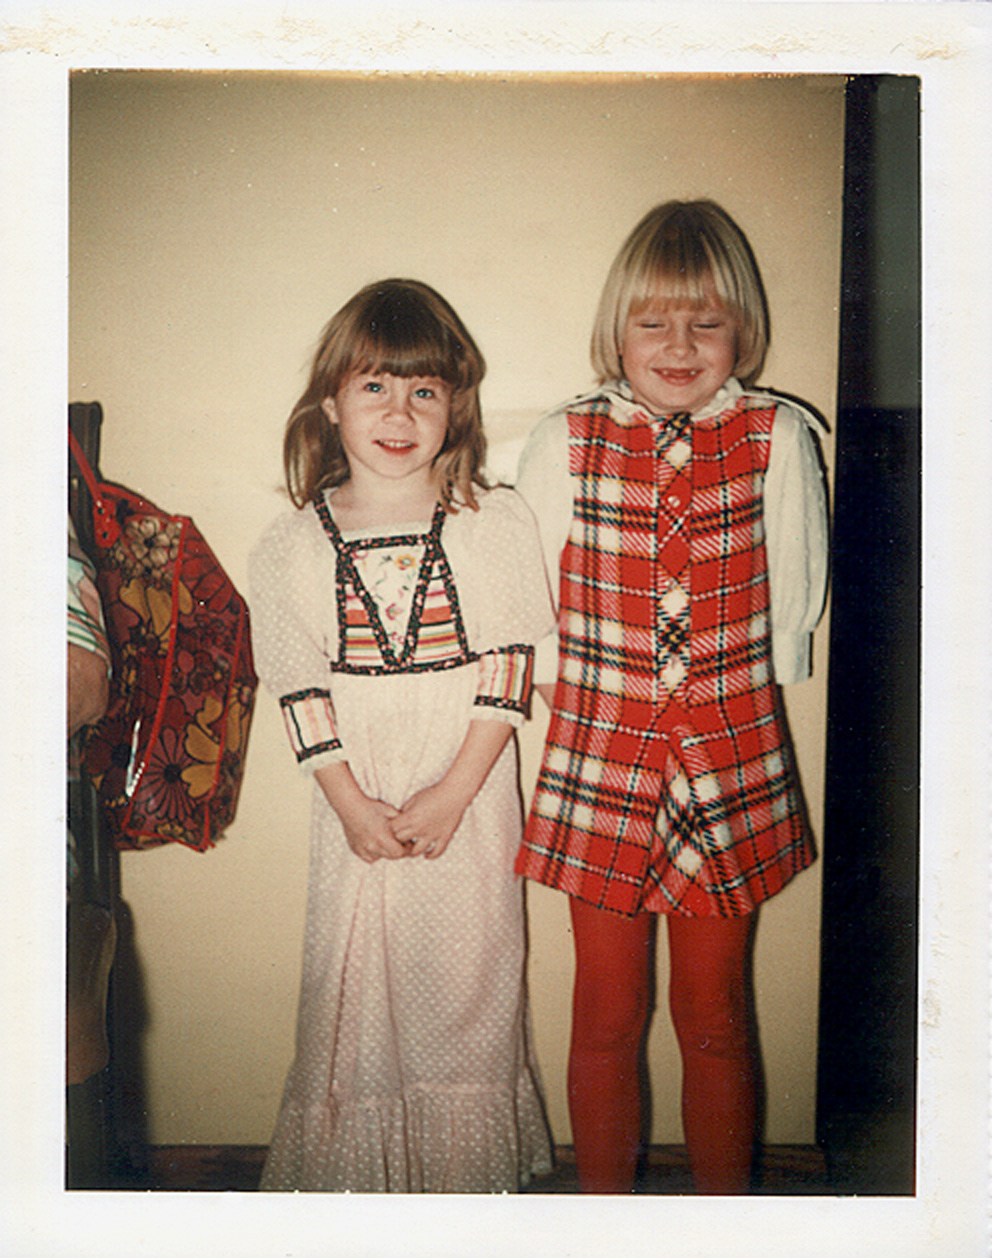 Find great deals on eBay for 70s kids clothes. Shop with confidence.